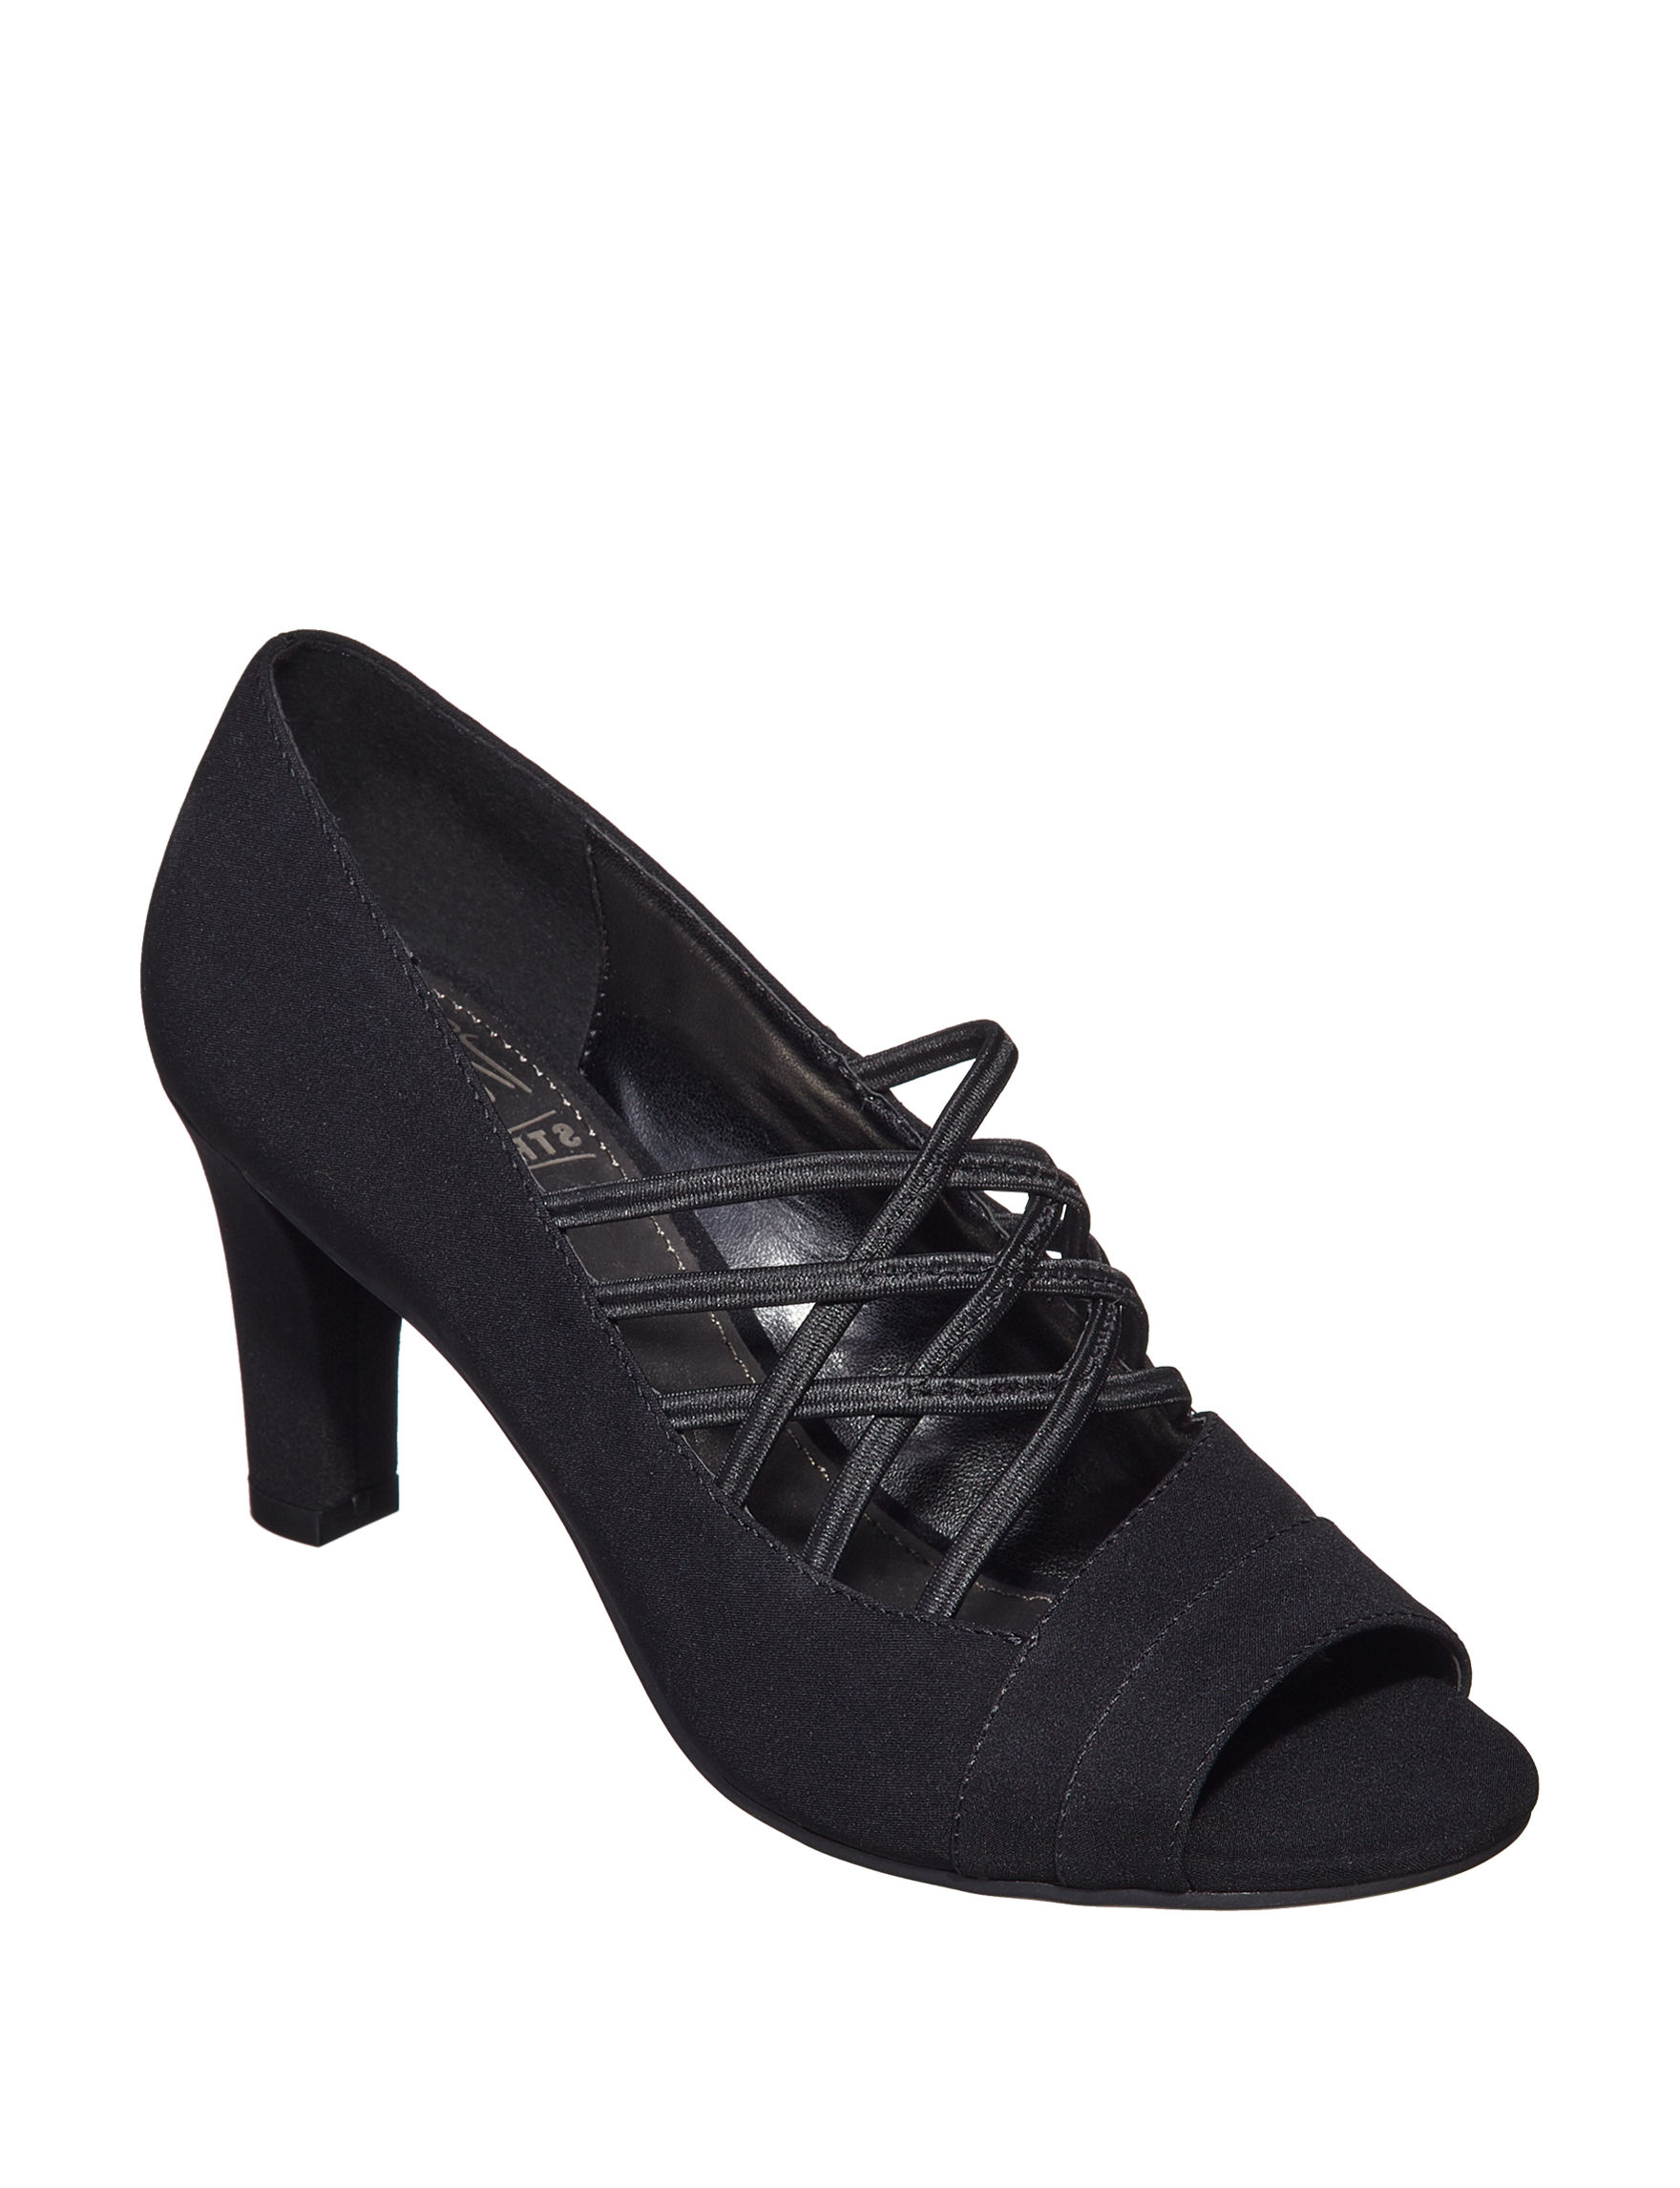 IMPO Black Peep Toe